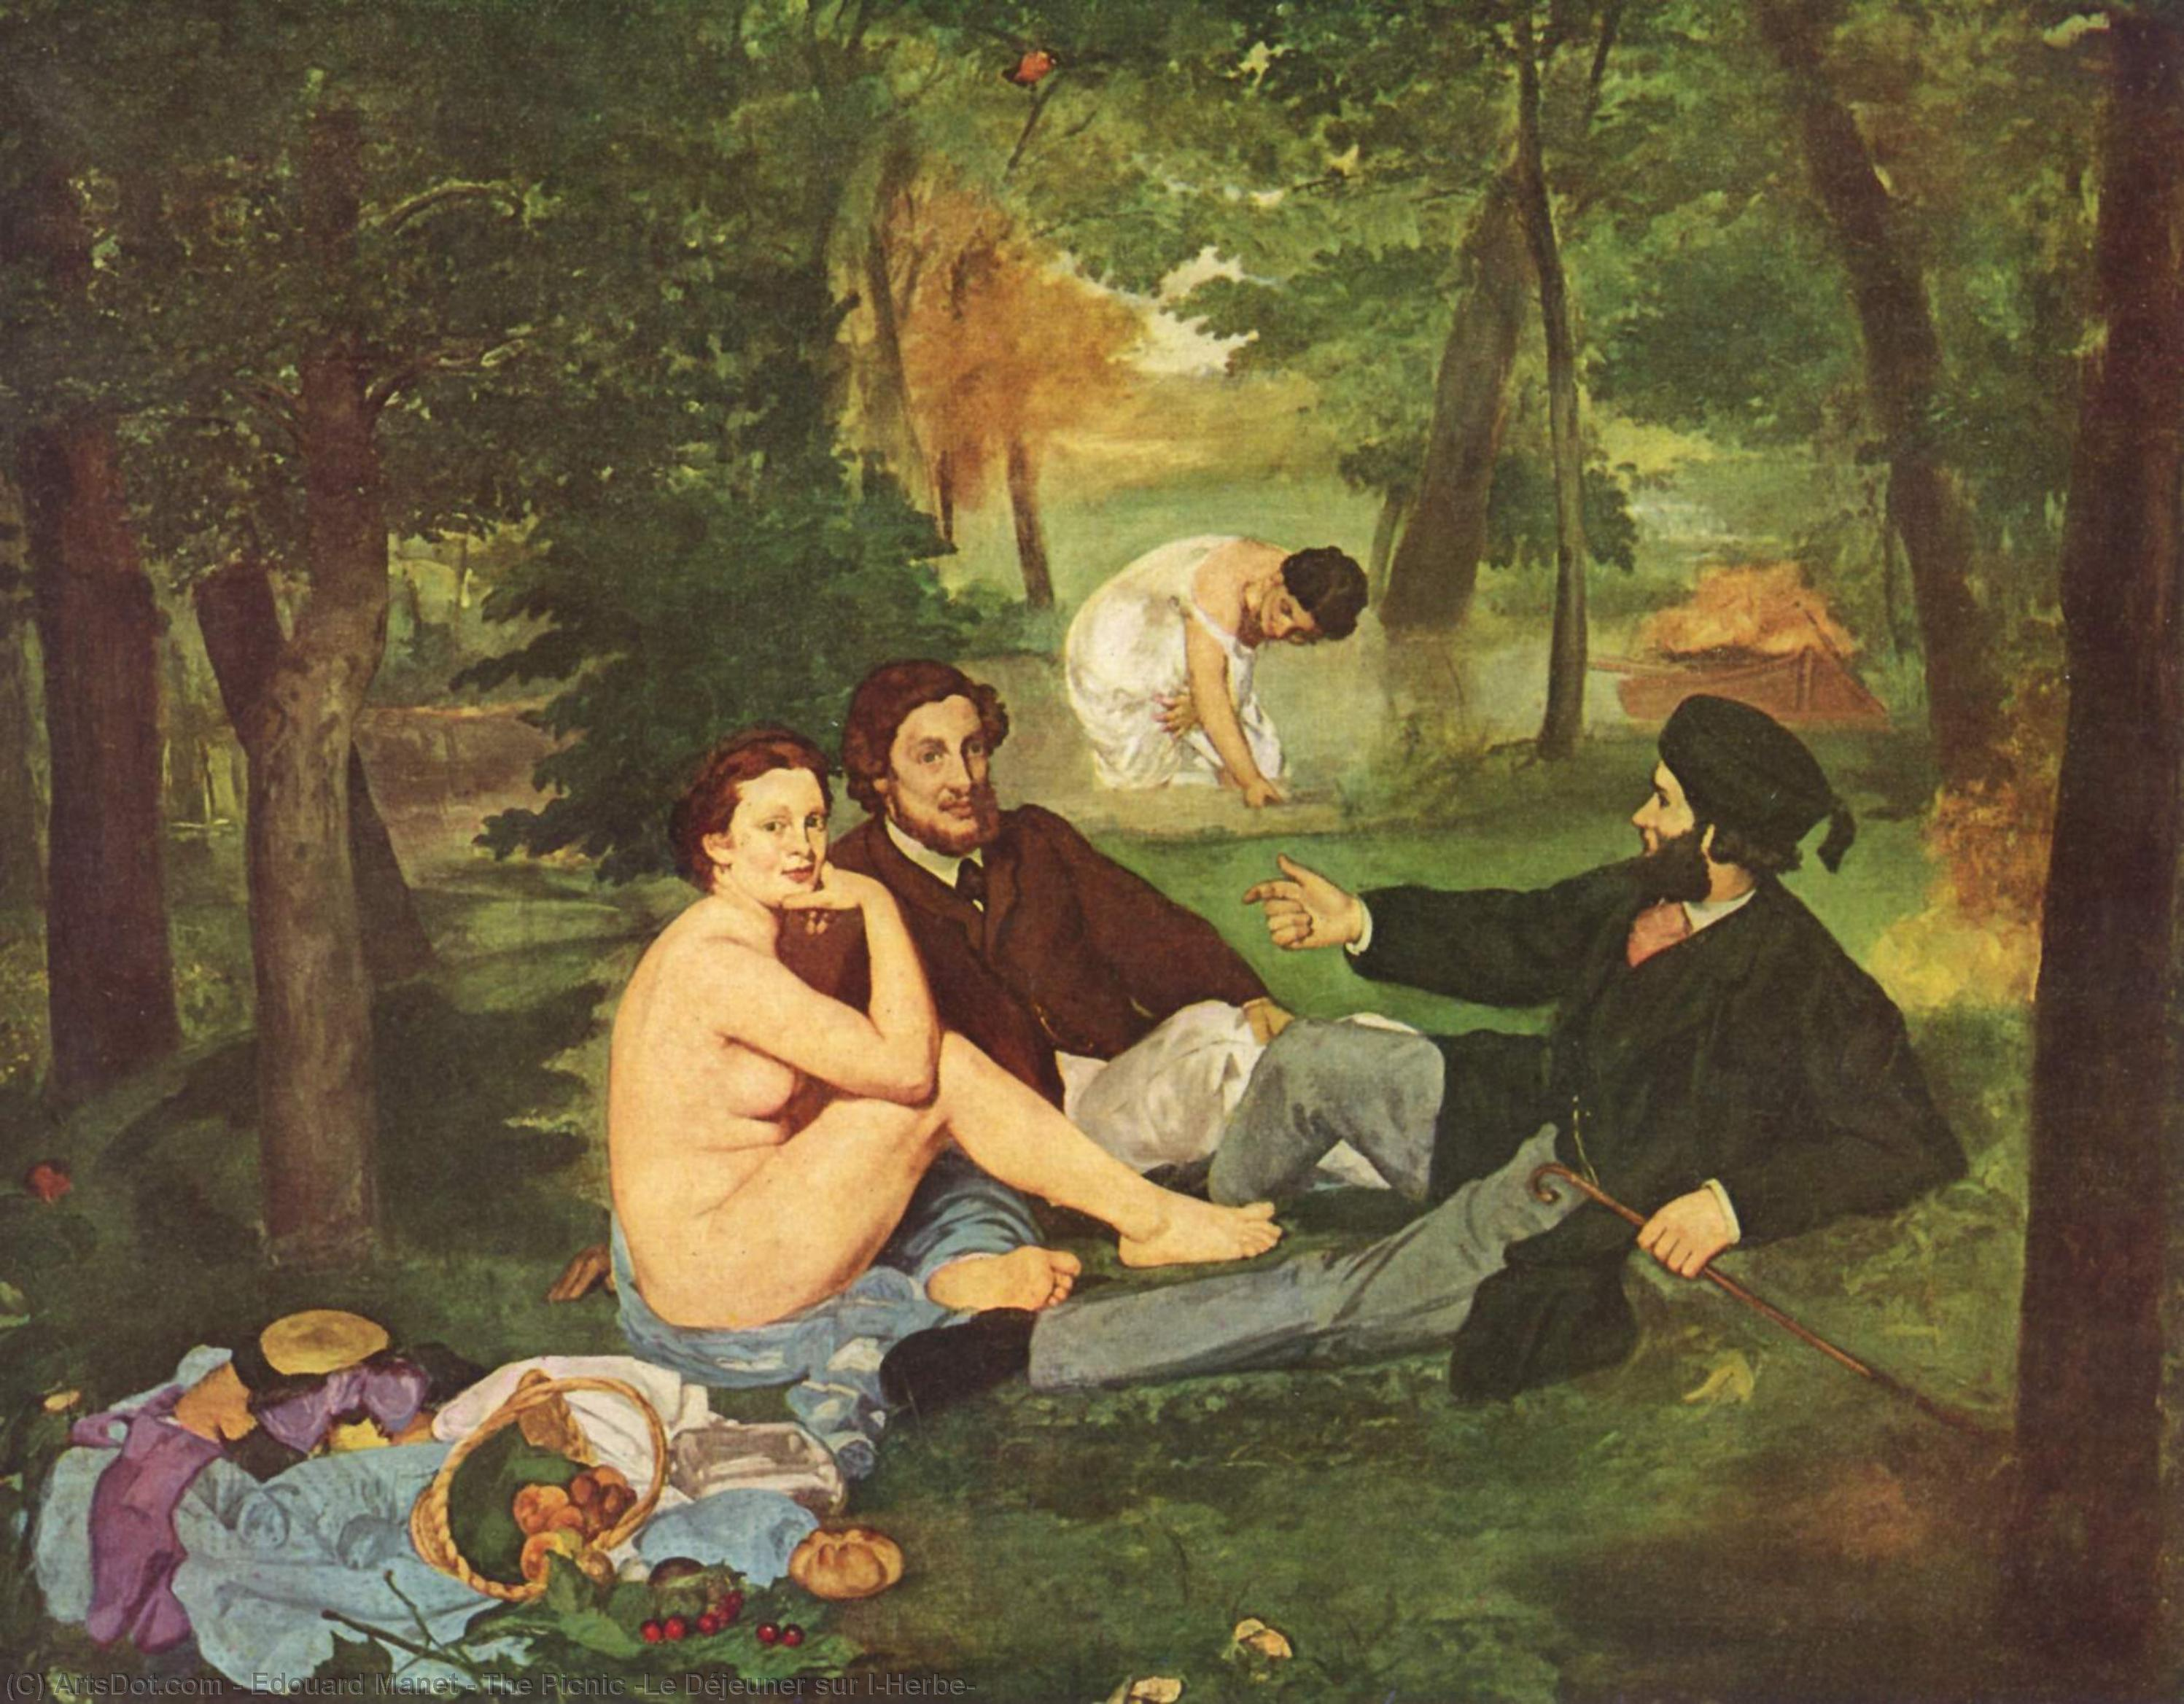 Wikioo.org - The Encyclopedia of Fine Arts - Painting, Artwork by Edouard Manet - The Picnic (Le Déjeuner sur l'Herbe)